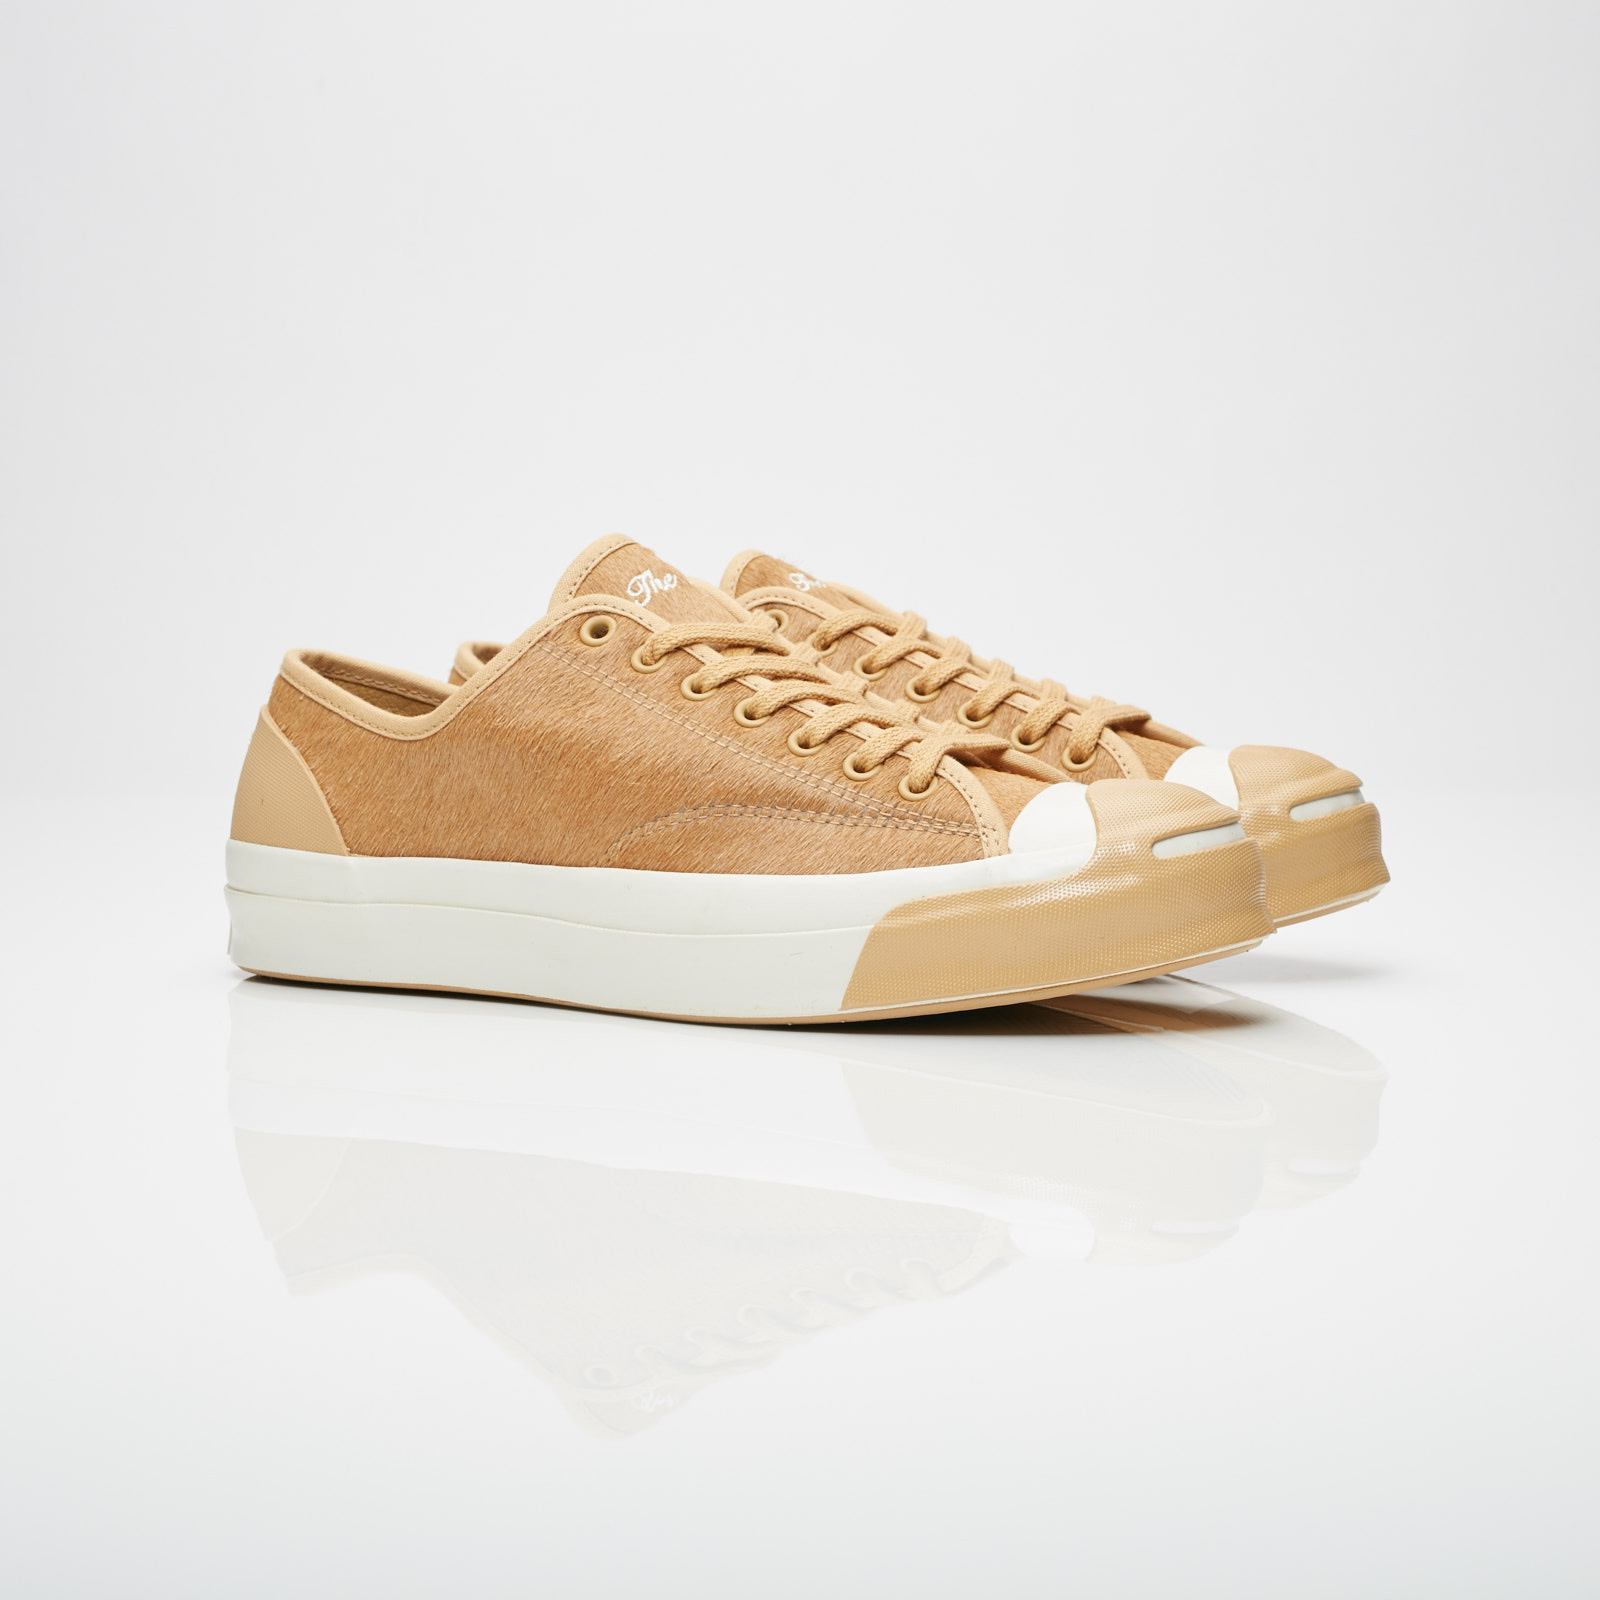 40 EU  43 EU Converse Sneakers x Purcell - Jack Purcell Textile - Camel  Noir (Leather Black) Reef Trainers - Reef Rover Mid Ls Trainers - Black U8t8Xo9